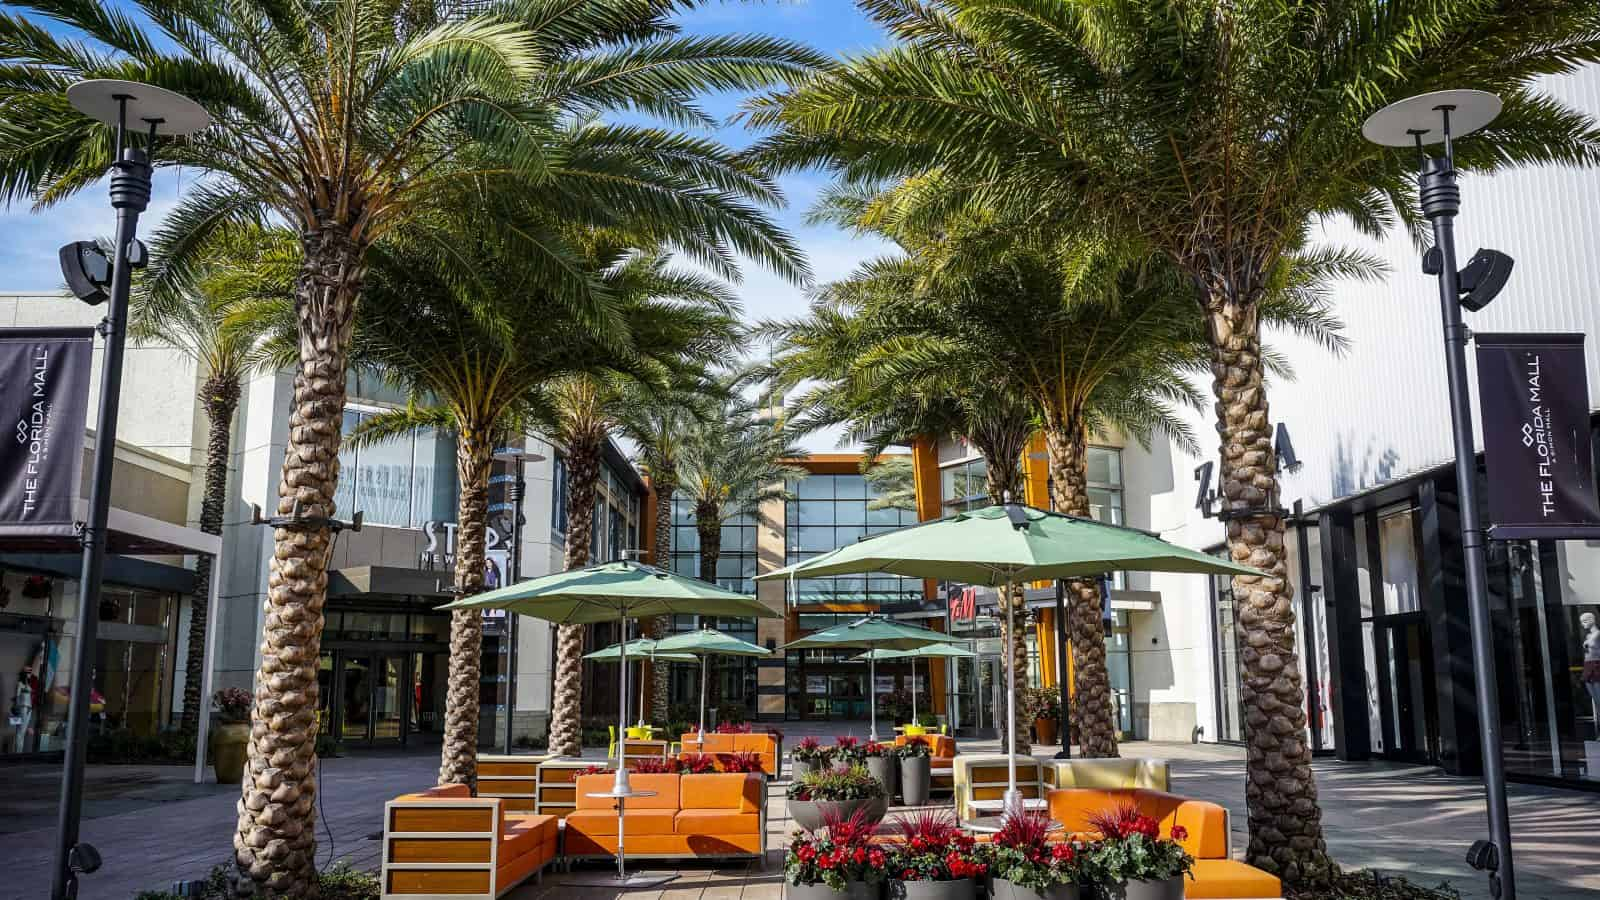 orange chairs and palm trees outside of one of the malls in orlando